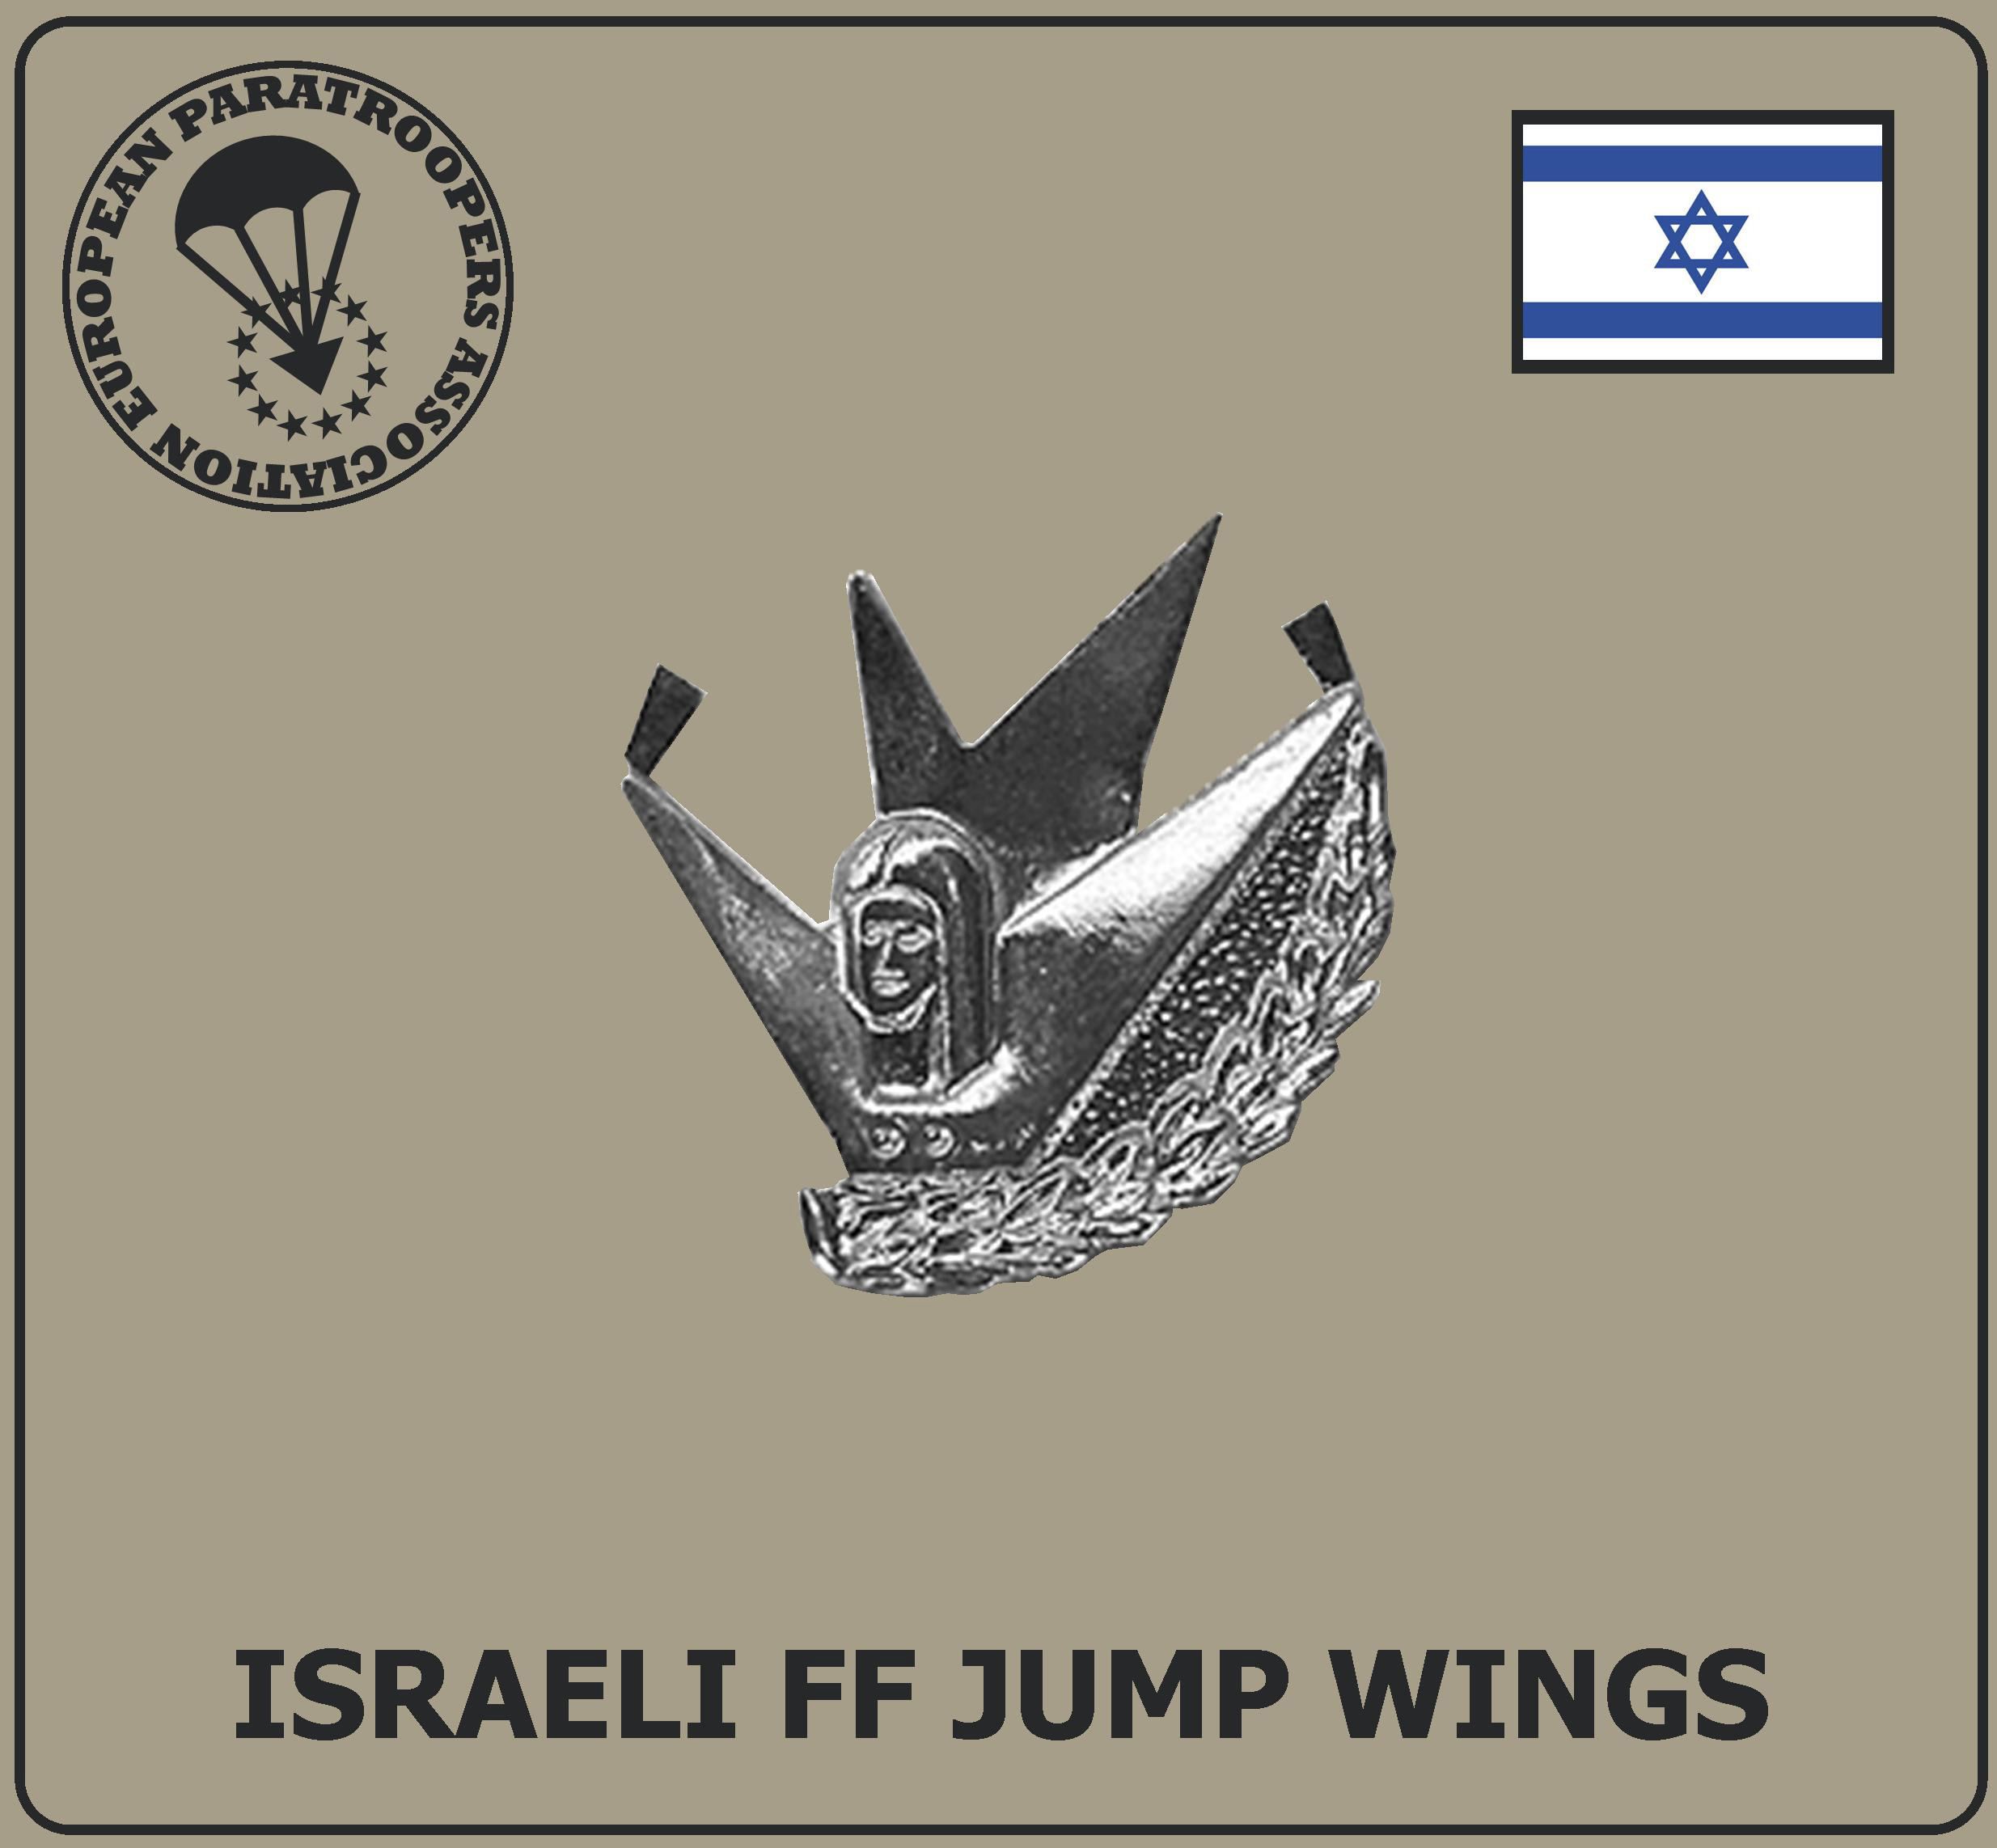 ISRAELI FF JUMP WINGS